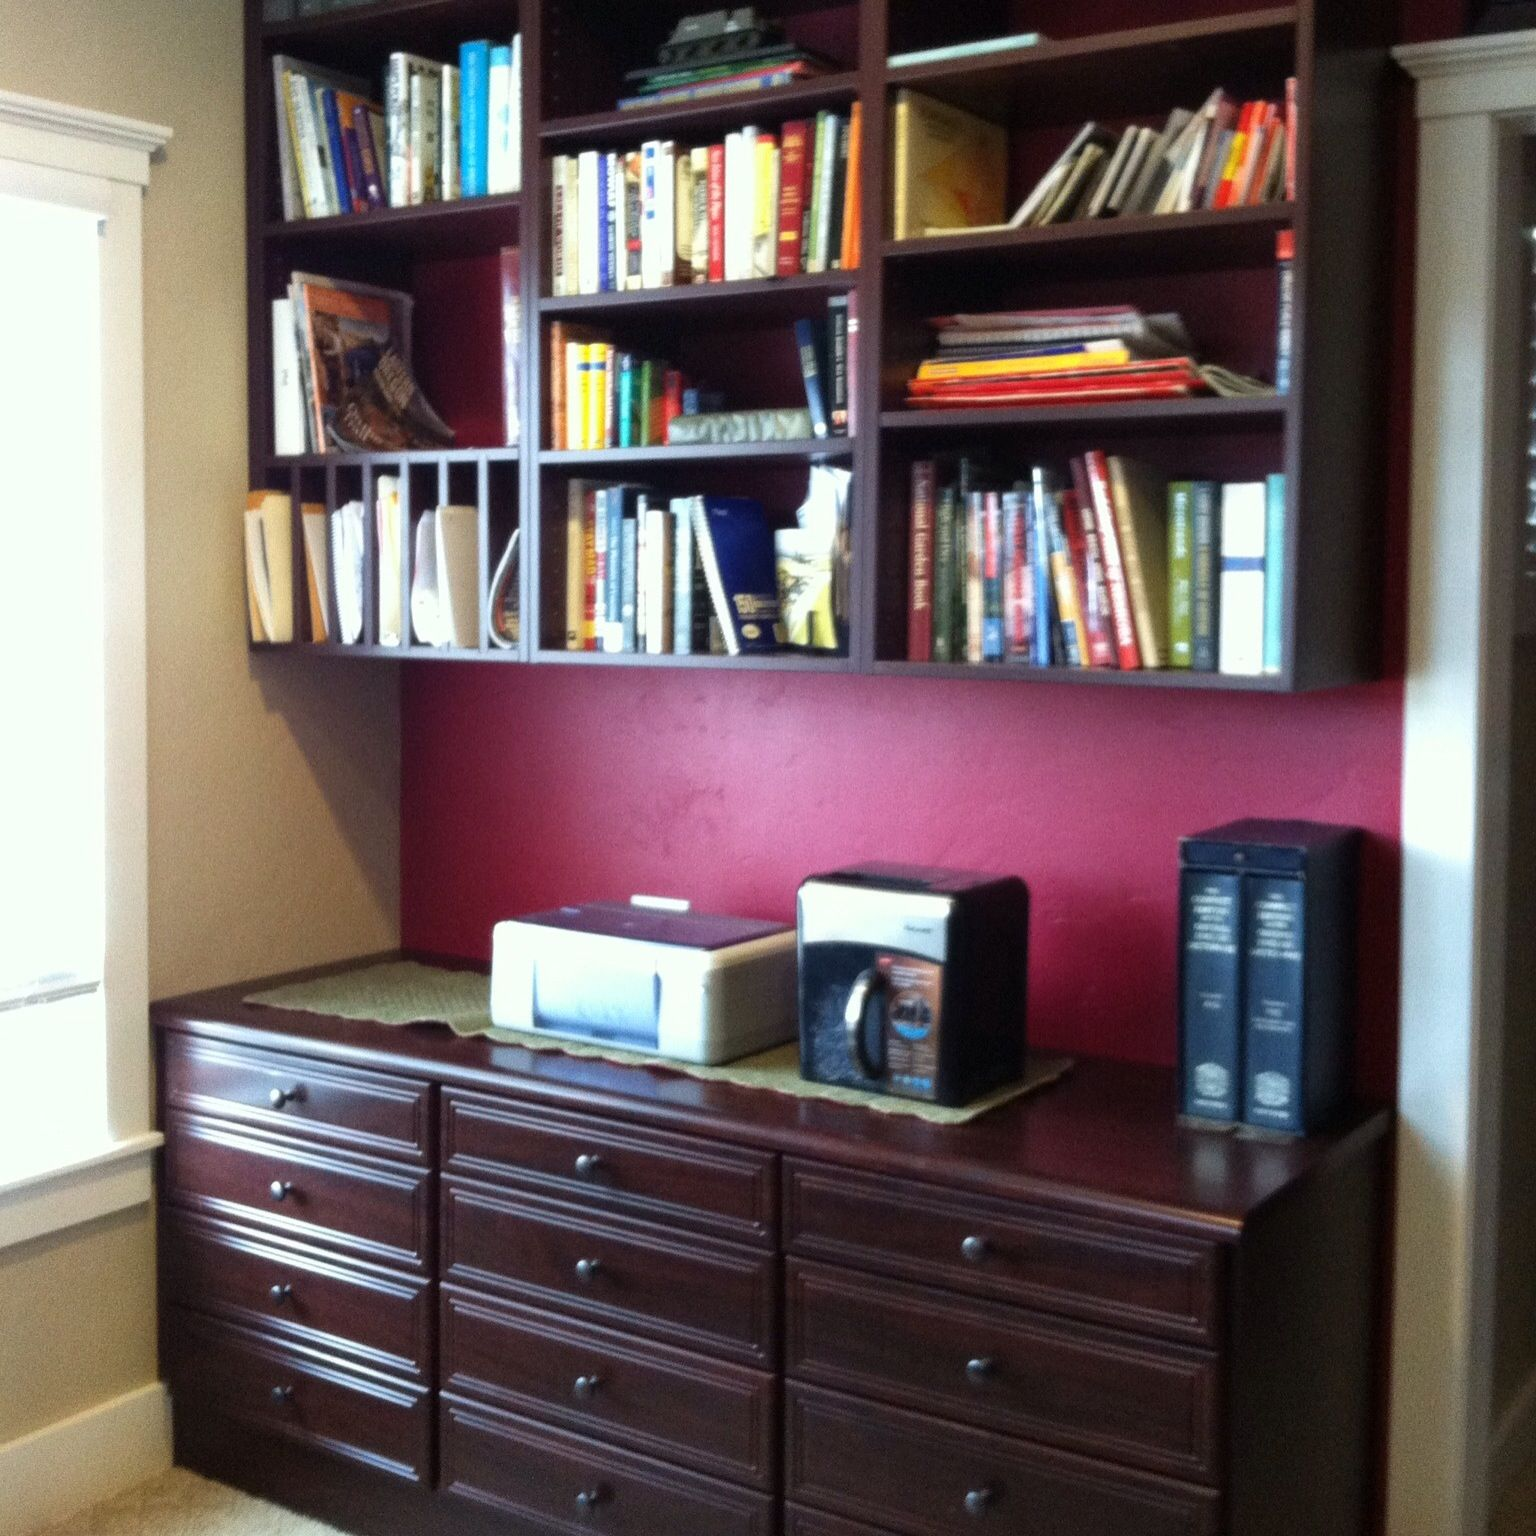 Home office for the book collector!